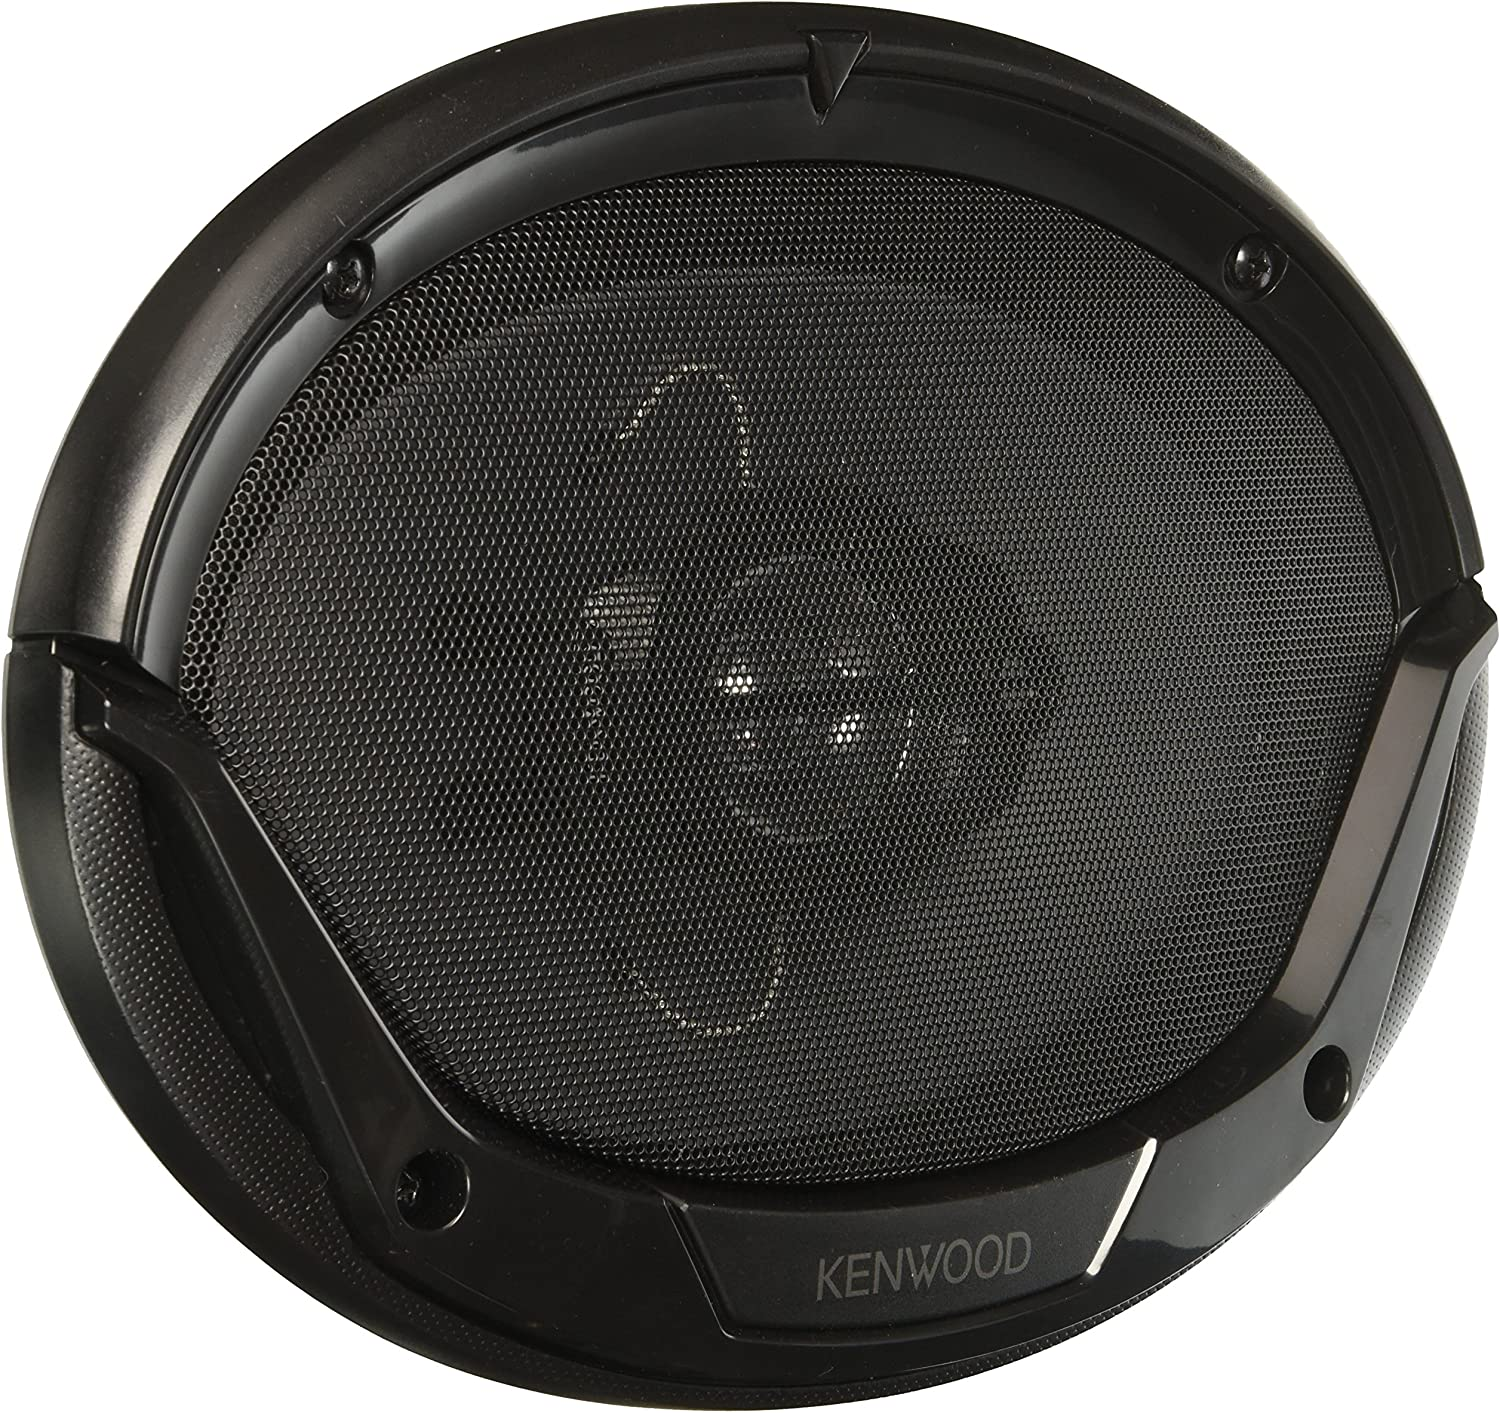 Pack of 2 Kenwood KFC-6965S 6 x 9 Inches 3-Way 400W Speakers